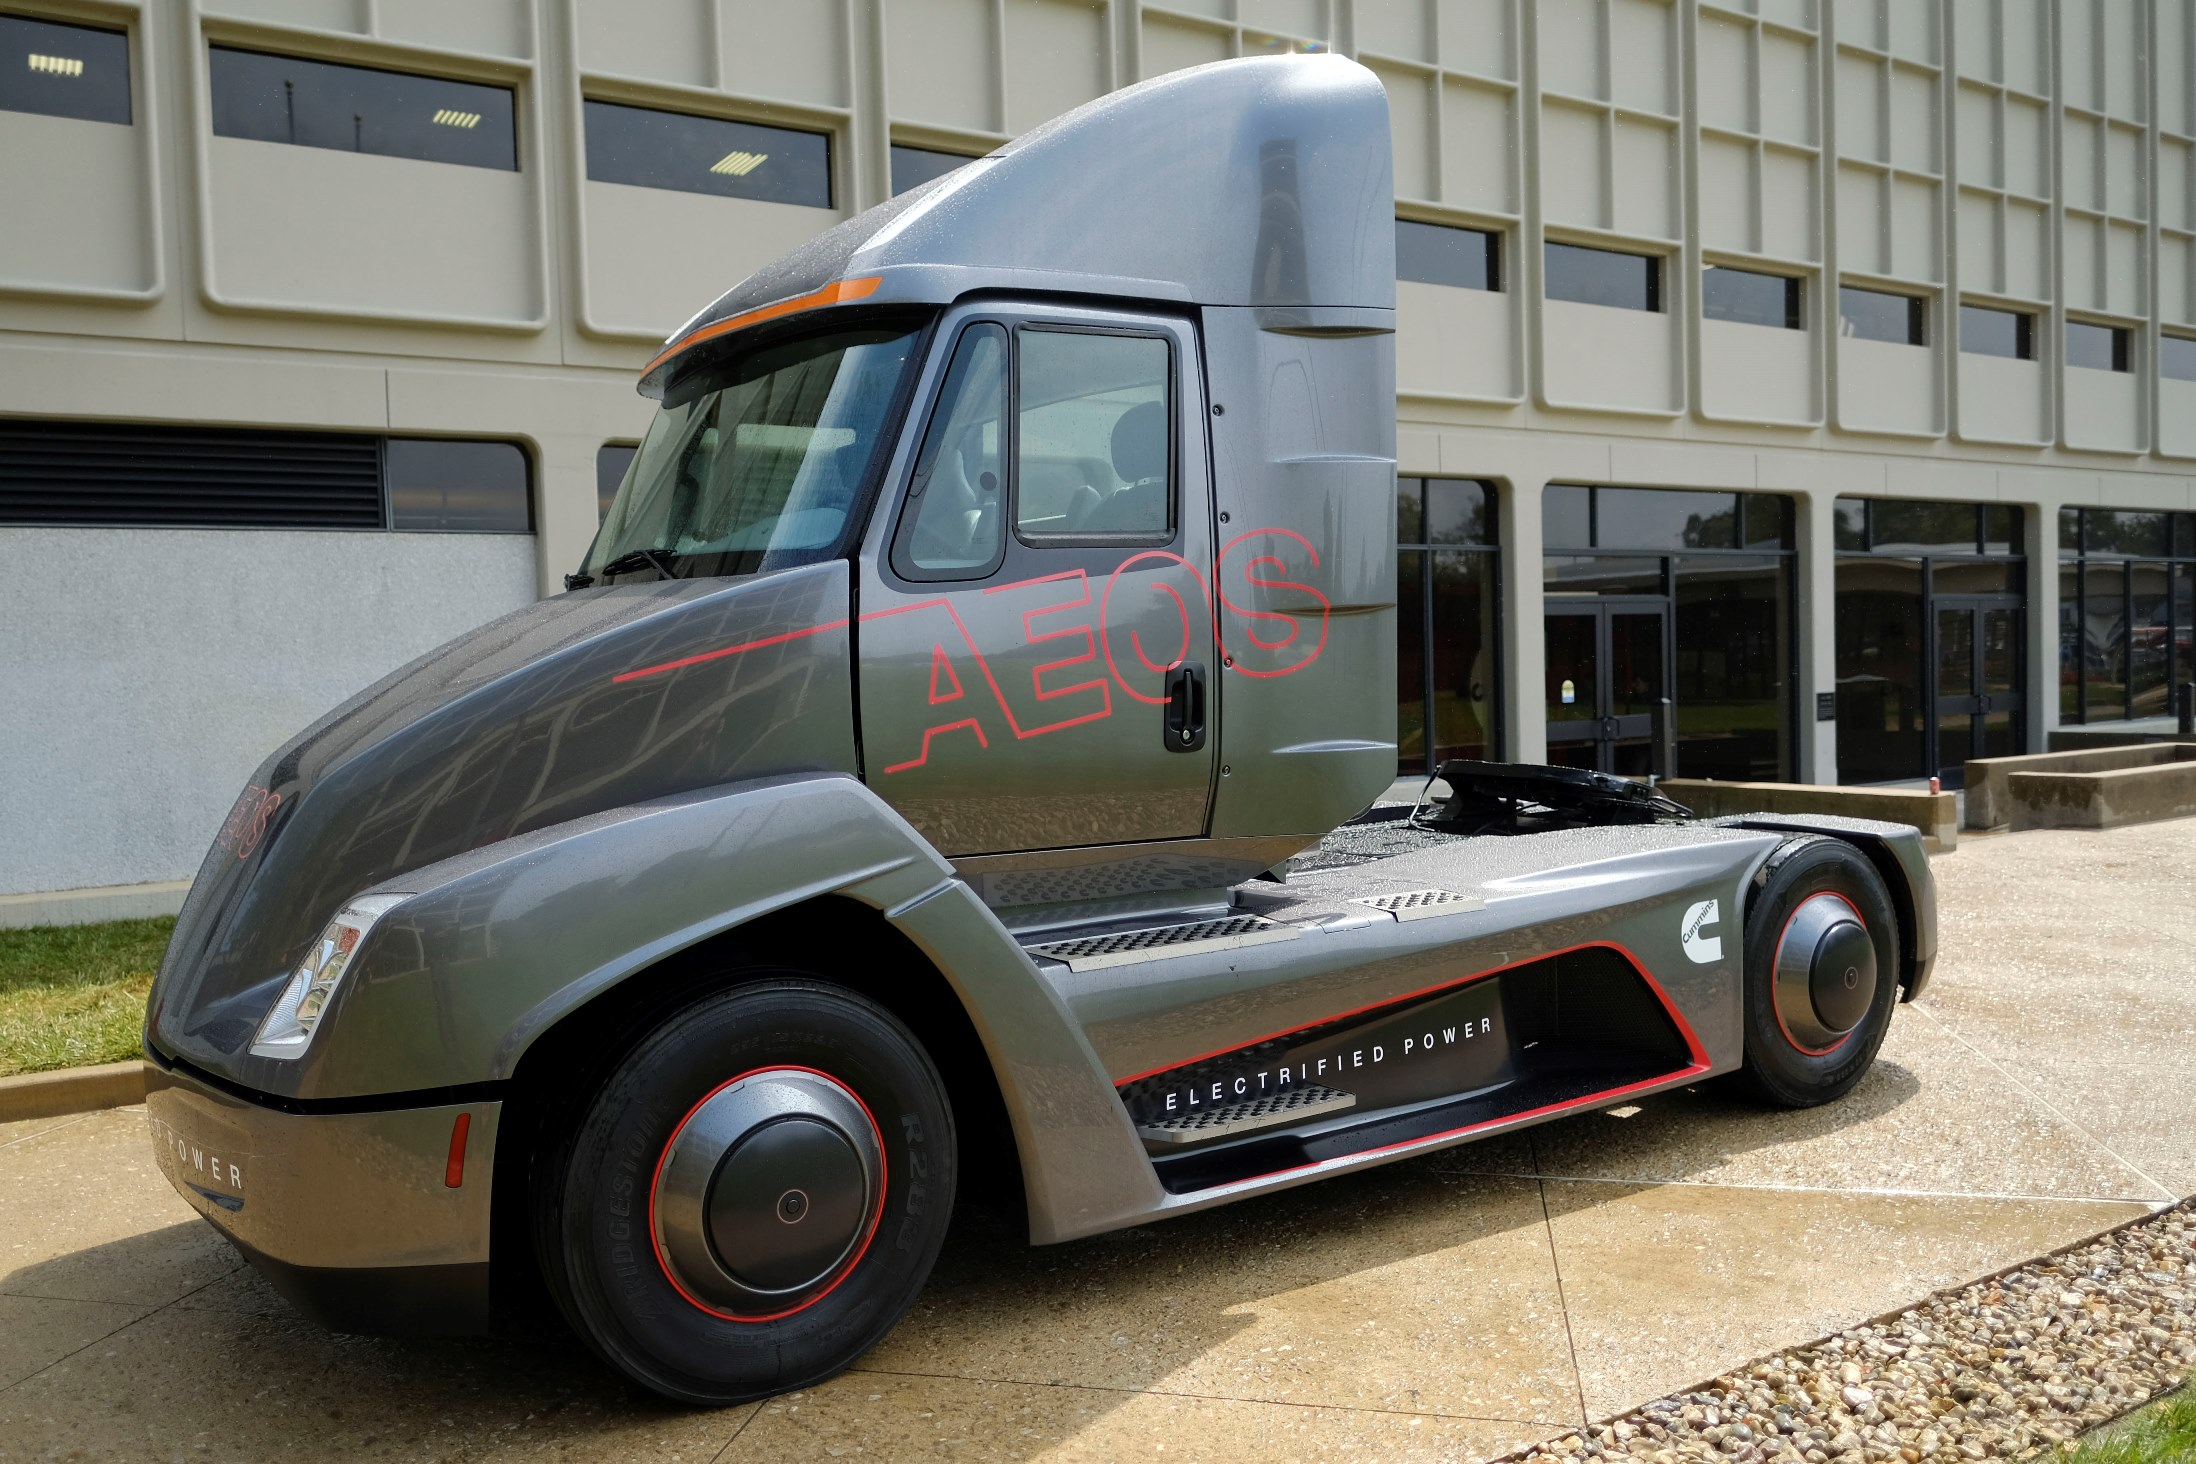 Electrified Aeos demonstration truck from Peterbilt and Cummins